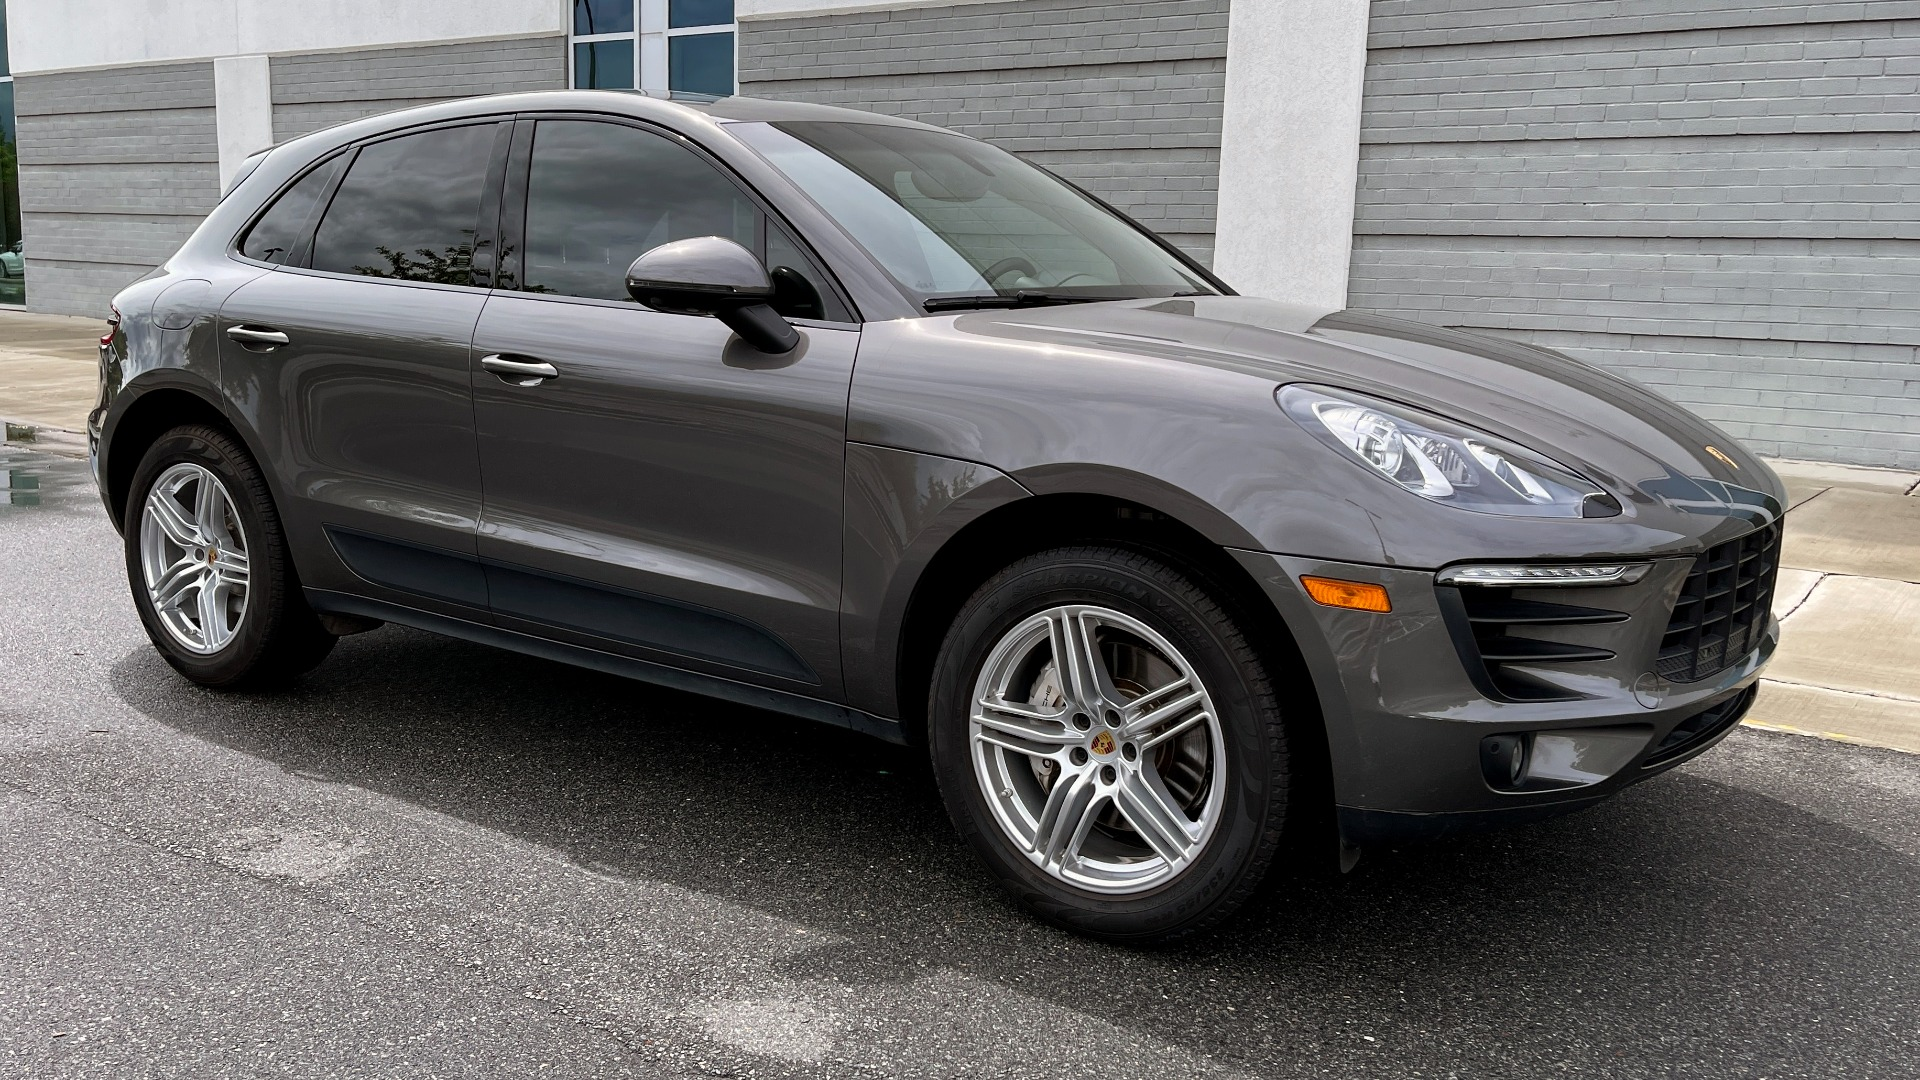 Used 2016 Porsche MACAN S PREMIUM PLUS / AWD / NAV / BOSE / SUNROOF / LCA / PARK ASST / INFOTAINMEN for sale $45,256 at Formula Imports in Charlotte NC 28227 5